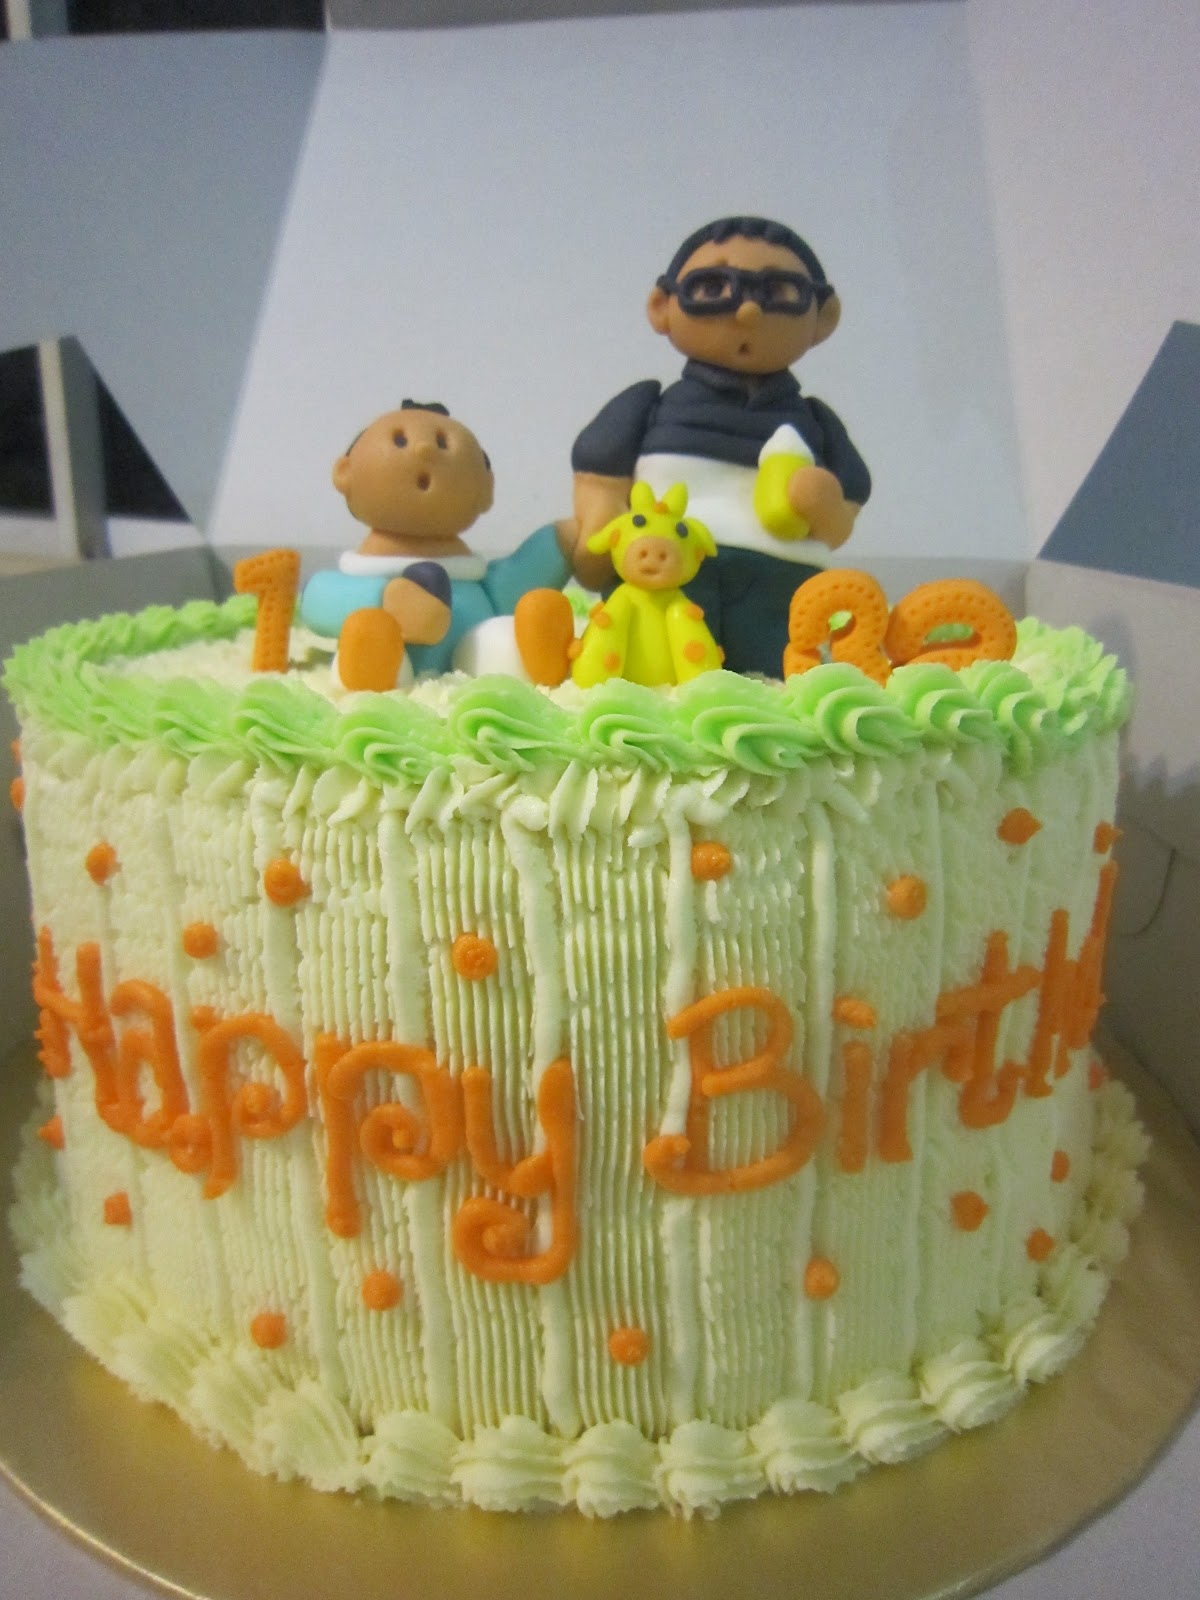 QUICK TAKES: Father and Son Birthday Cake